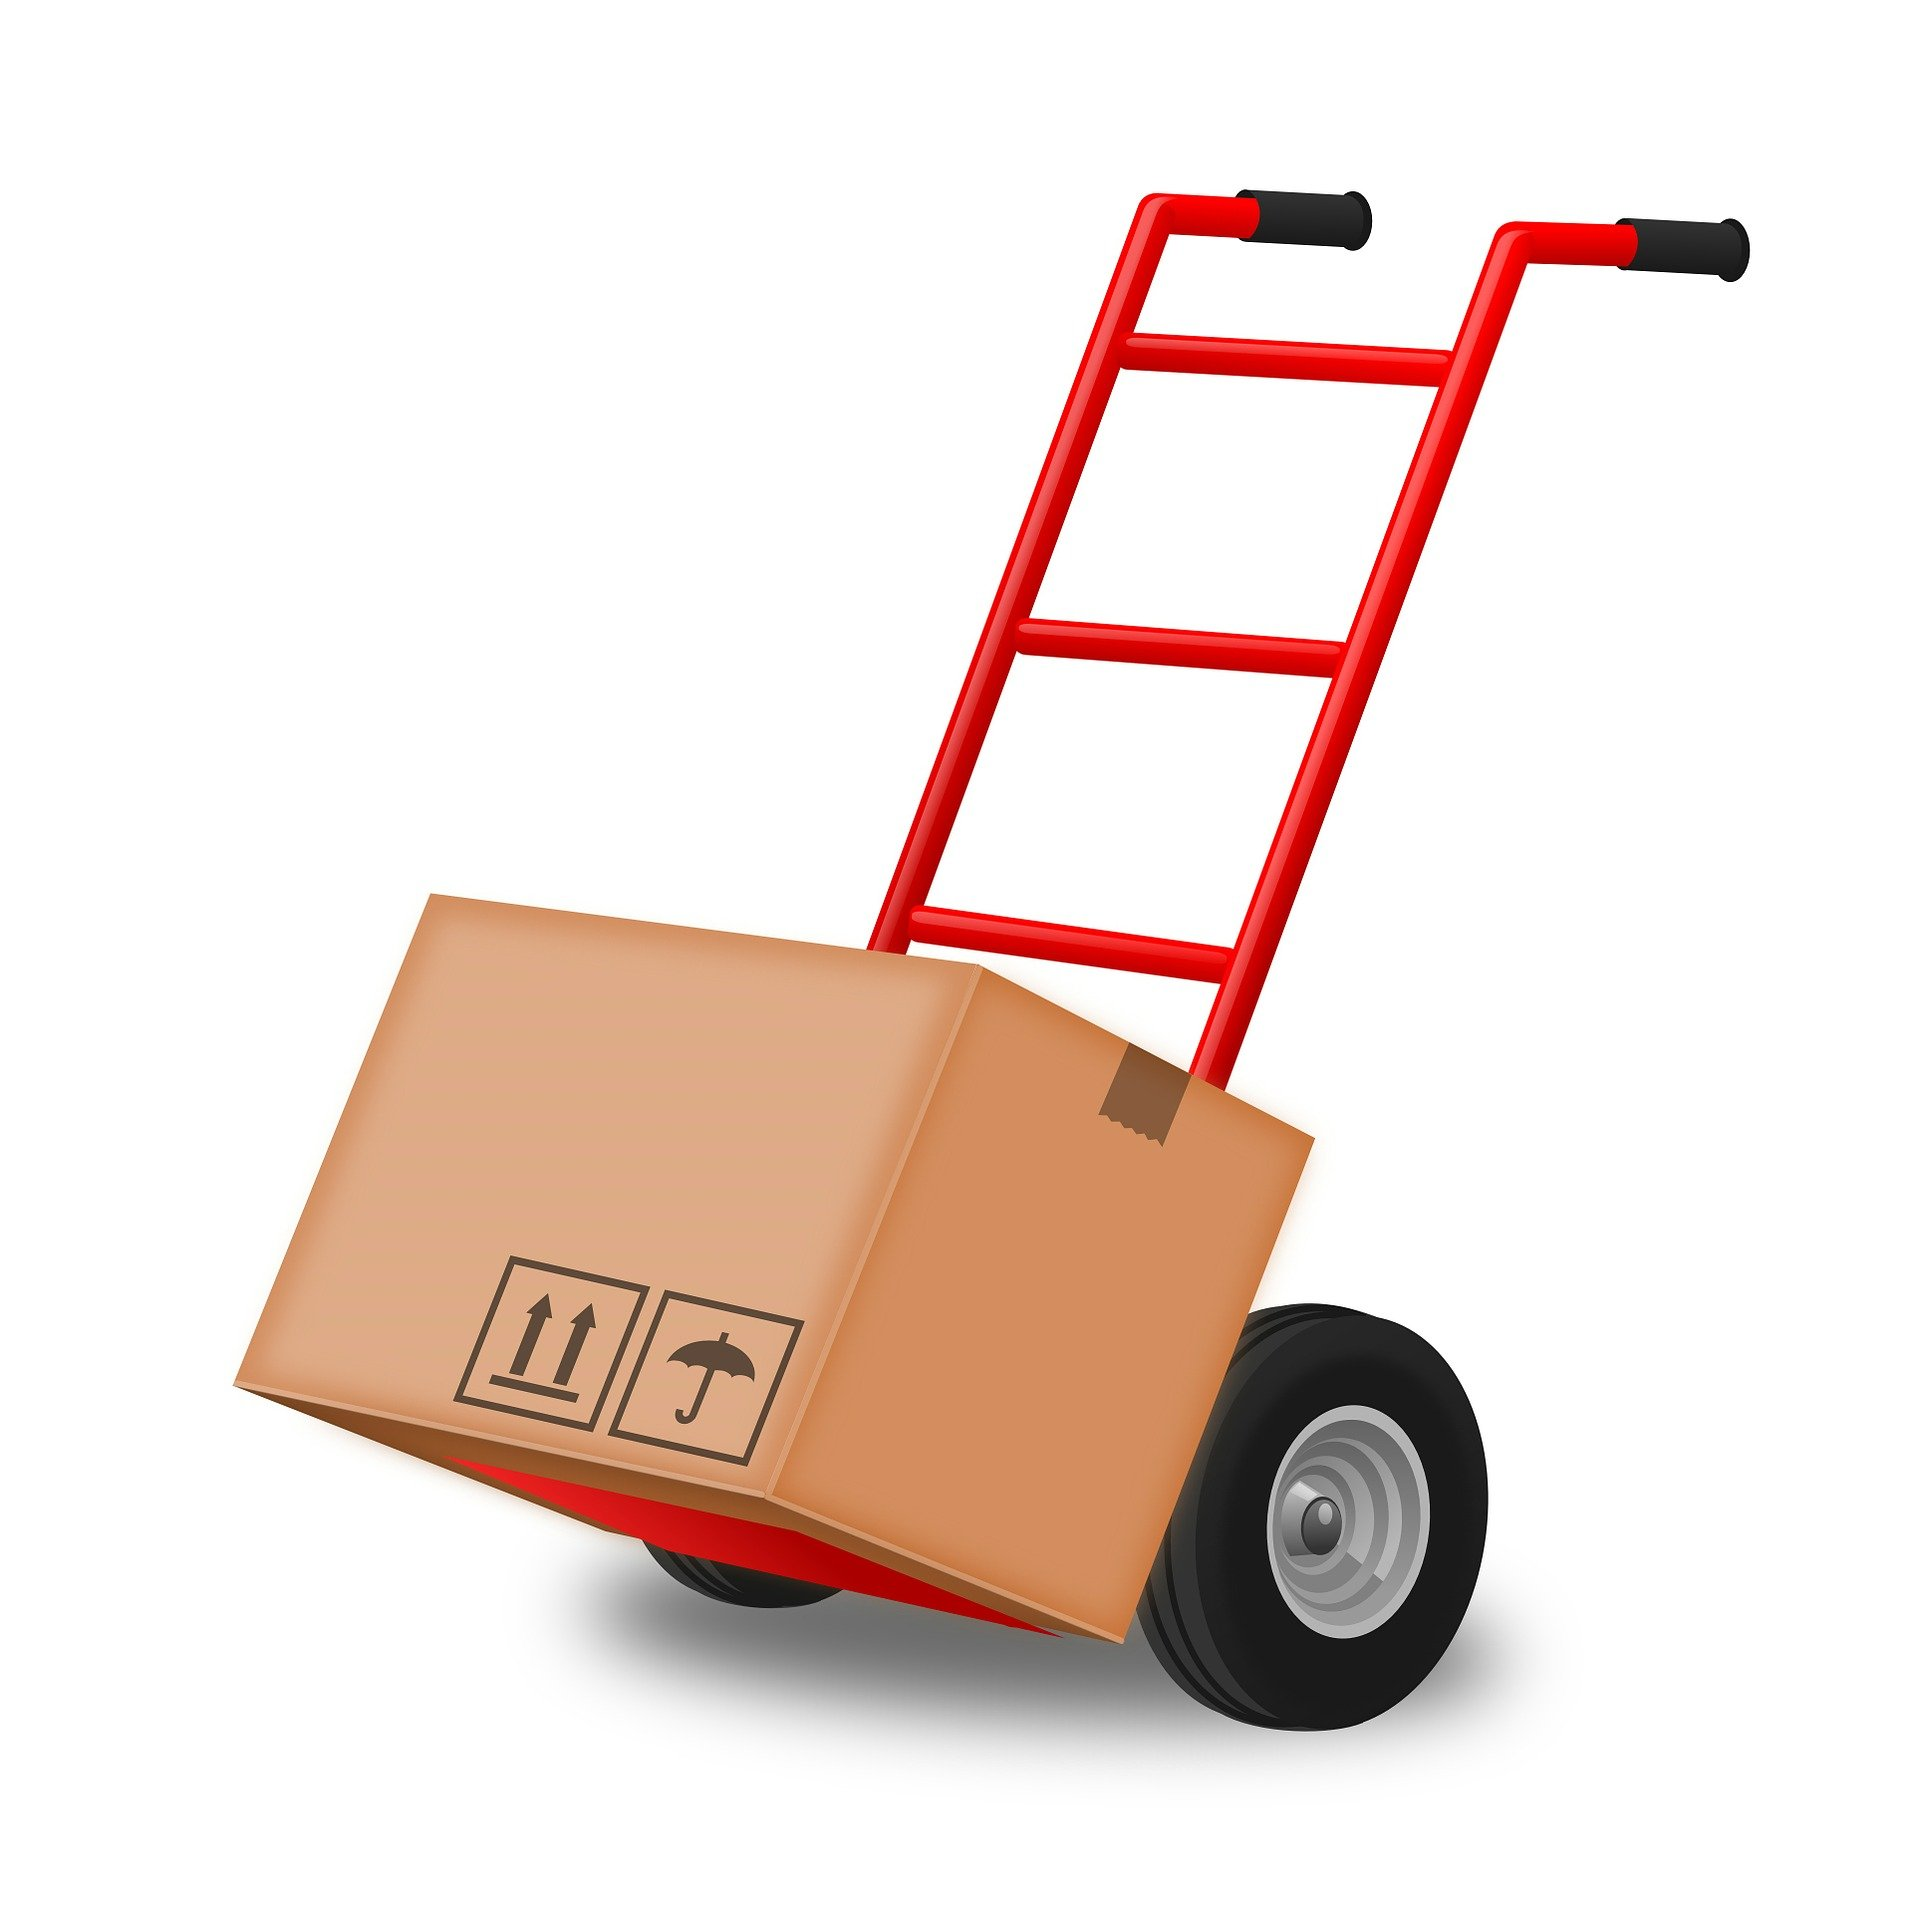 a hand truck with a small load